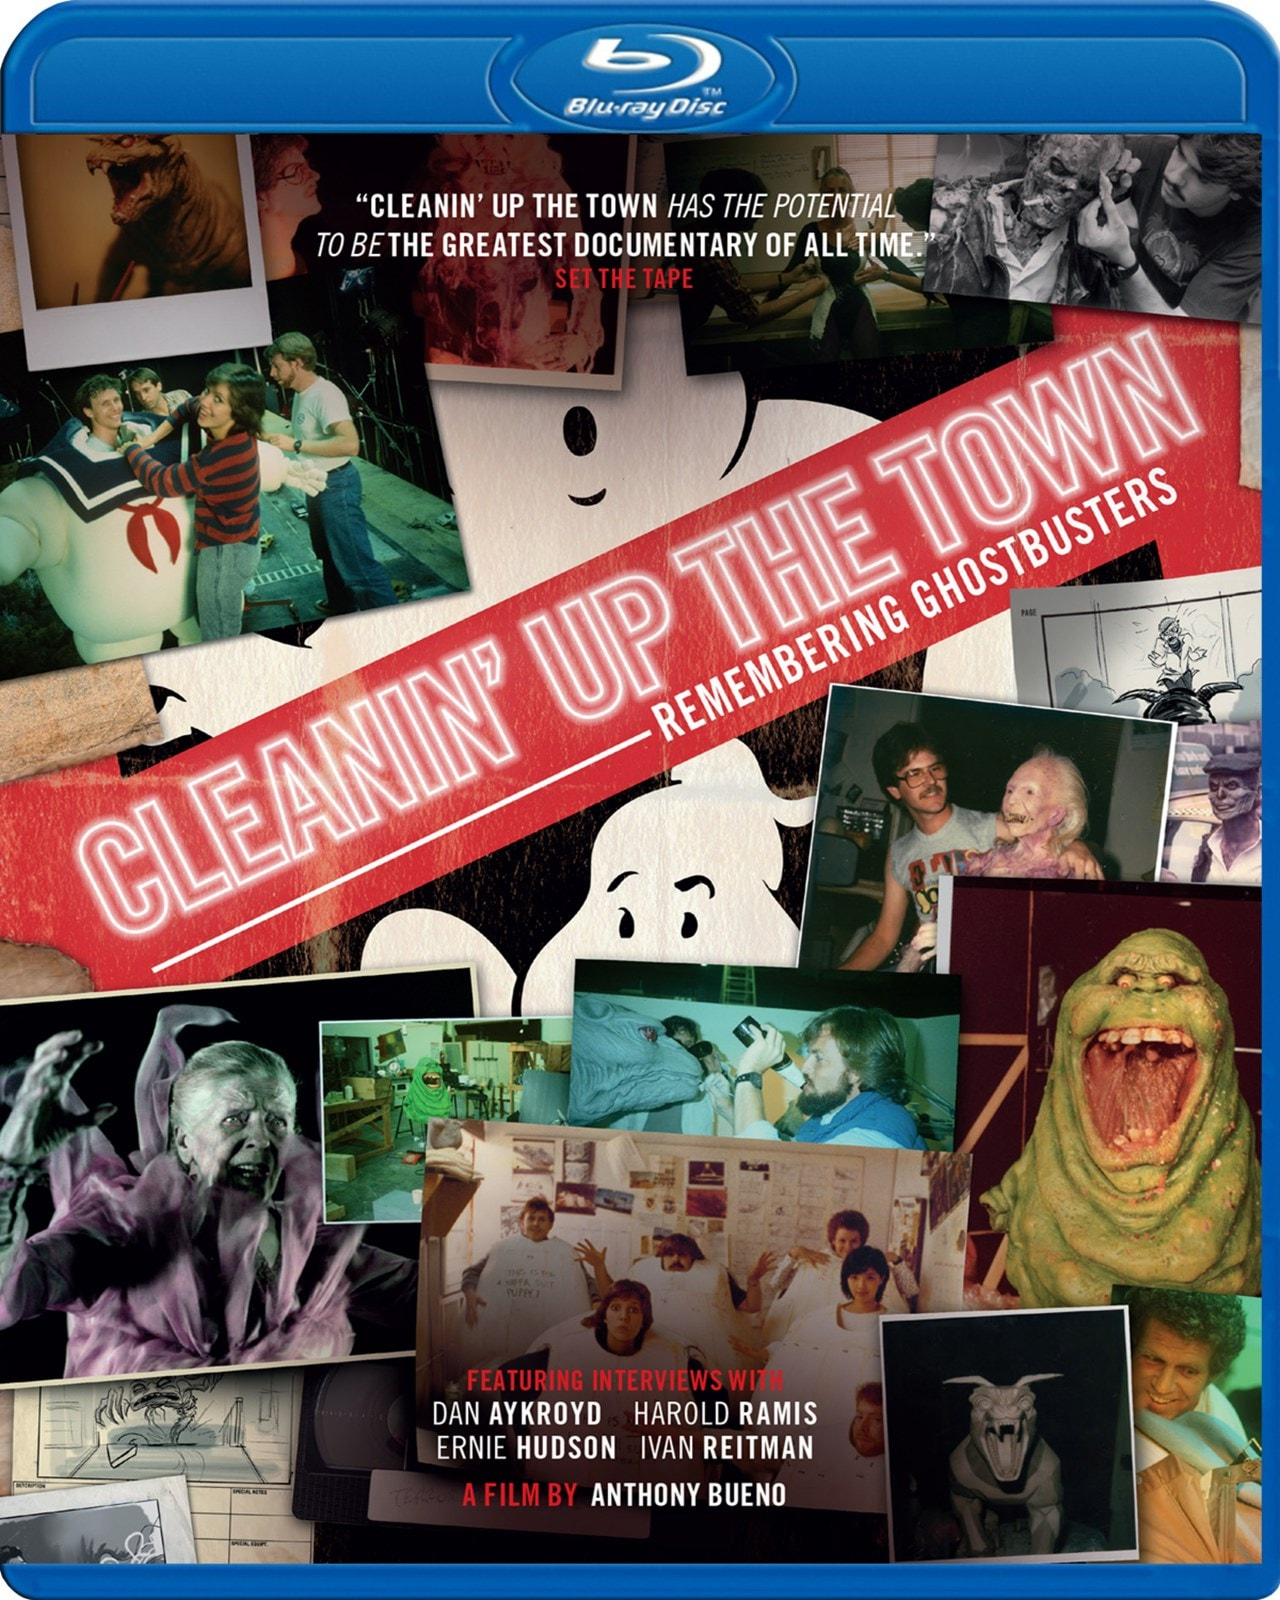 Cleanin' Up the Town: Remembering Ghostbusters - 1